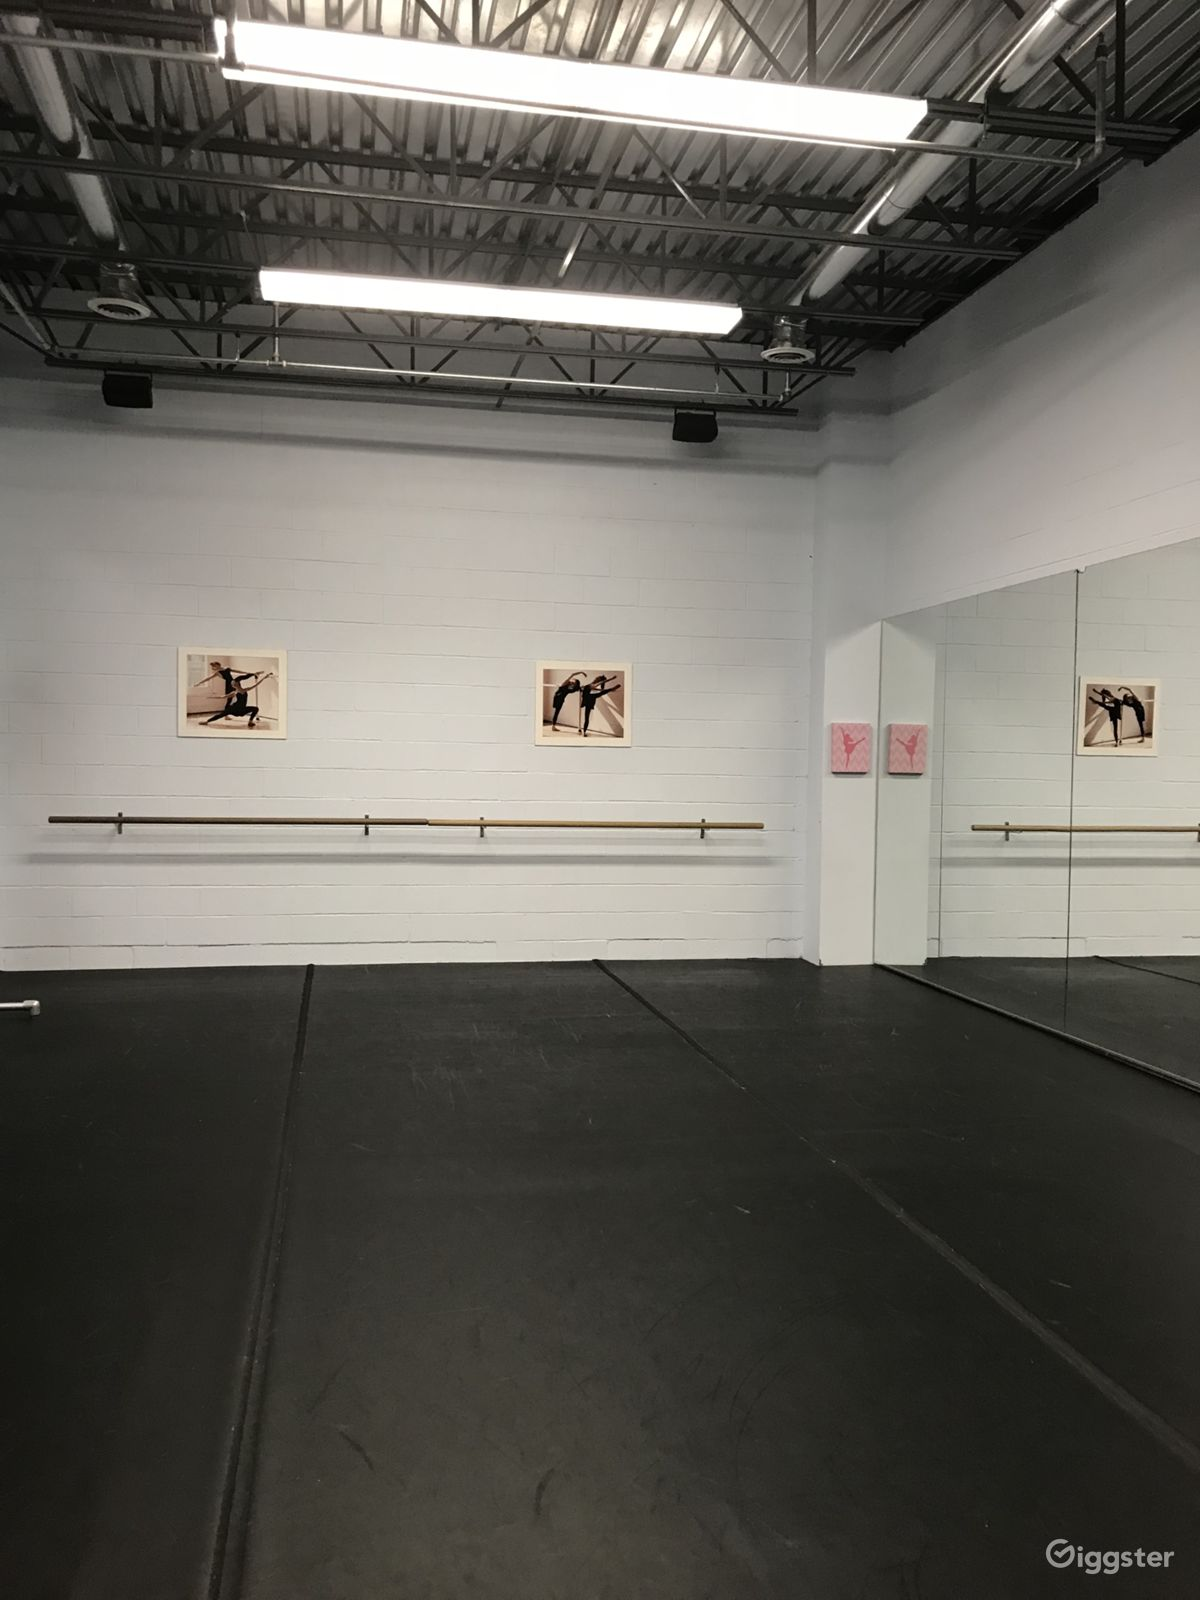 ee88a8c54761 Rent the Dance/Fitness/Gym(commercial) Beautiful clean studio space with  high